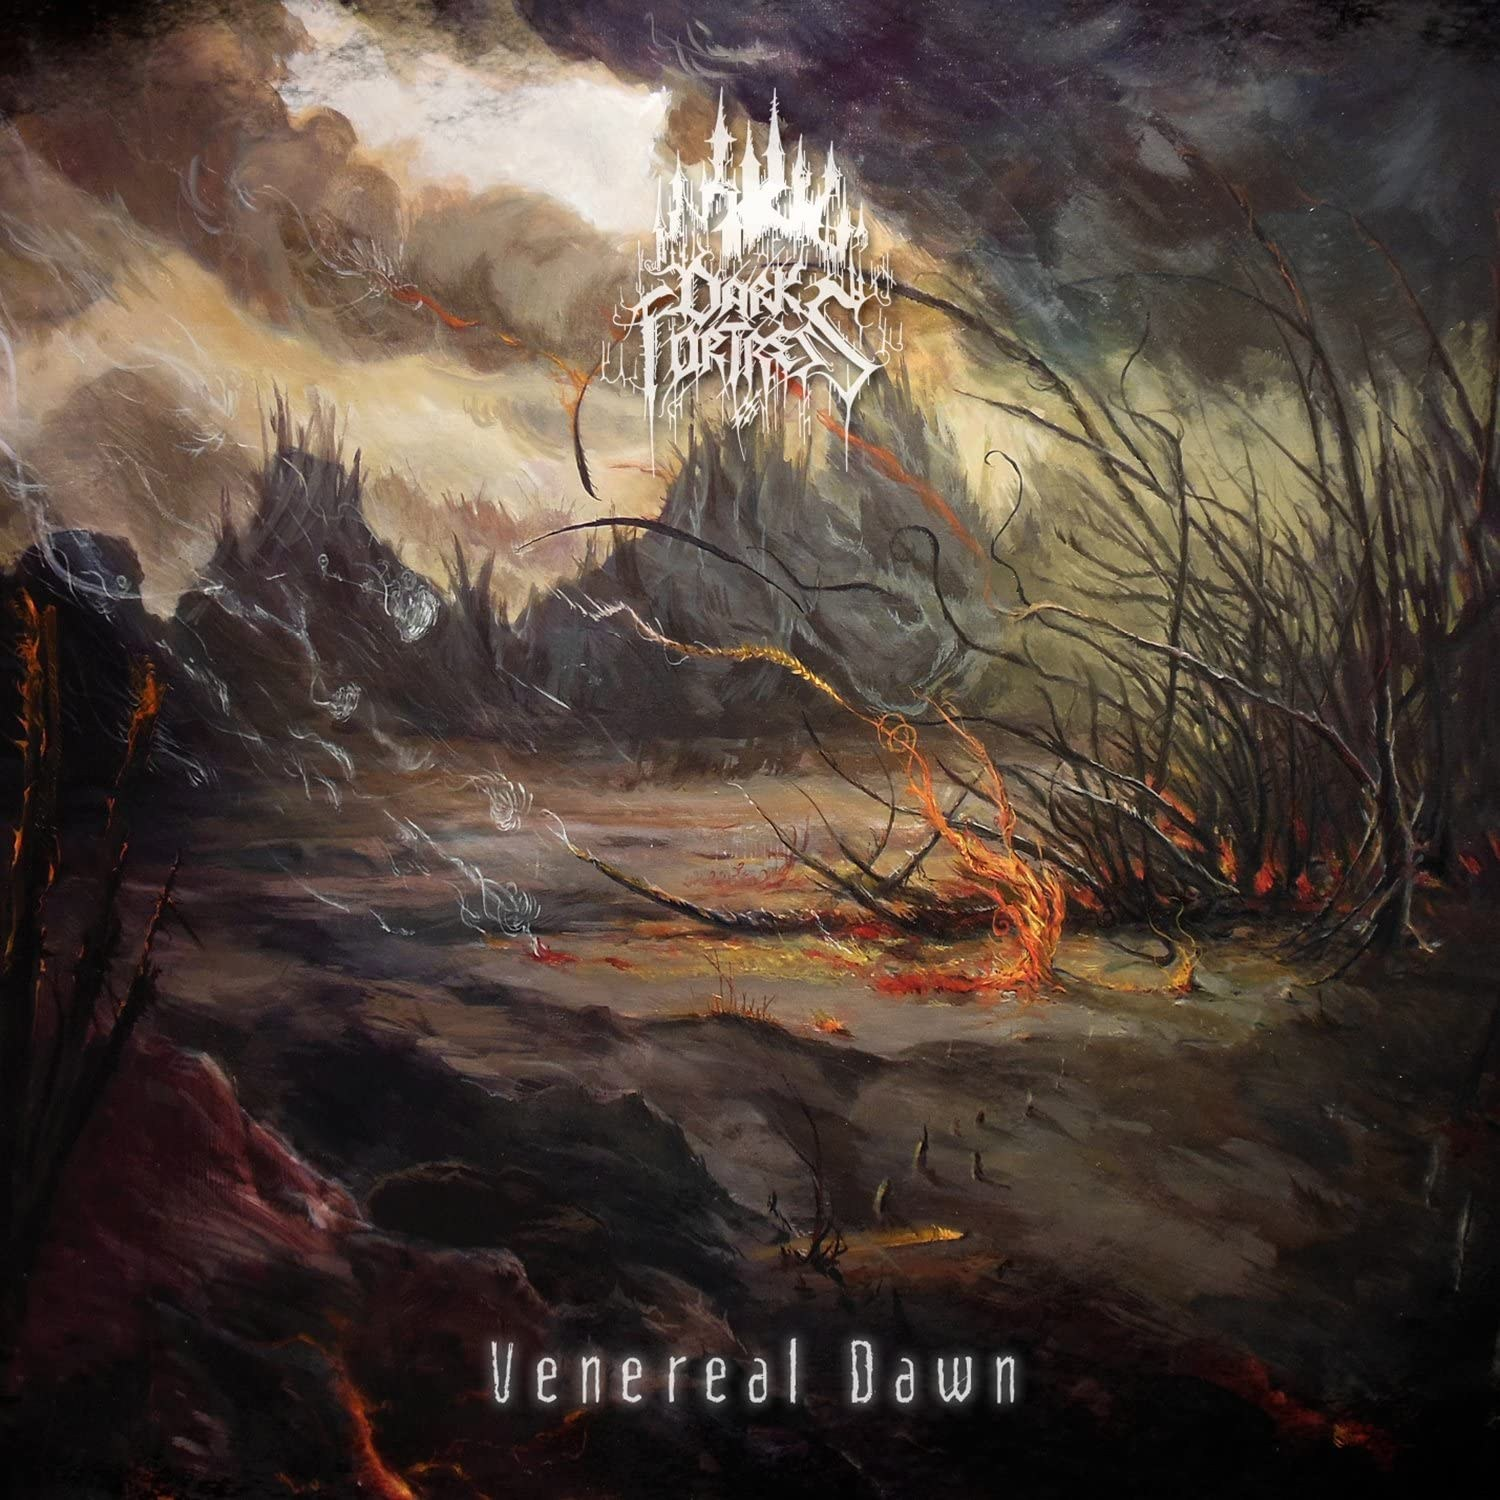 Review for Dark Fortress - Venereal Dawn